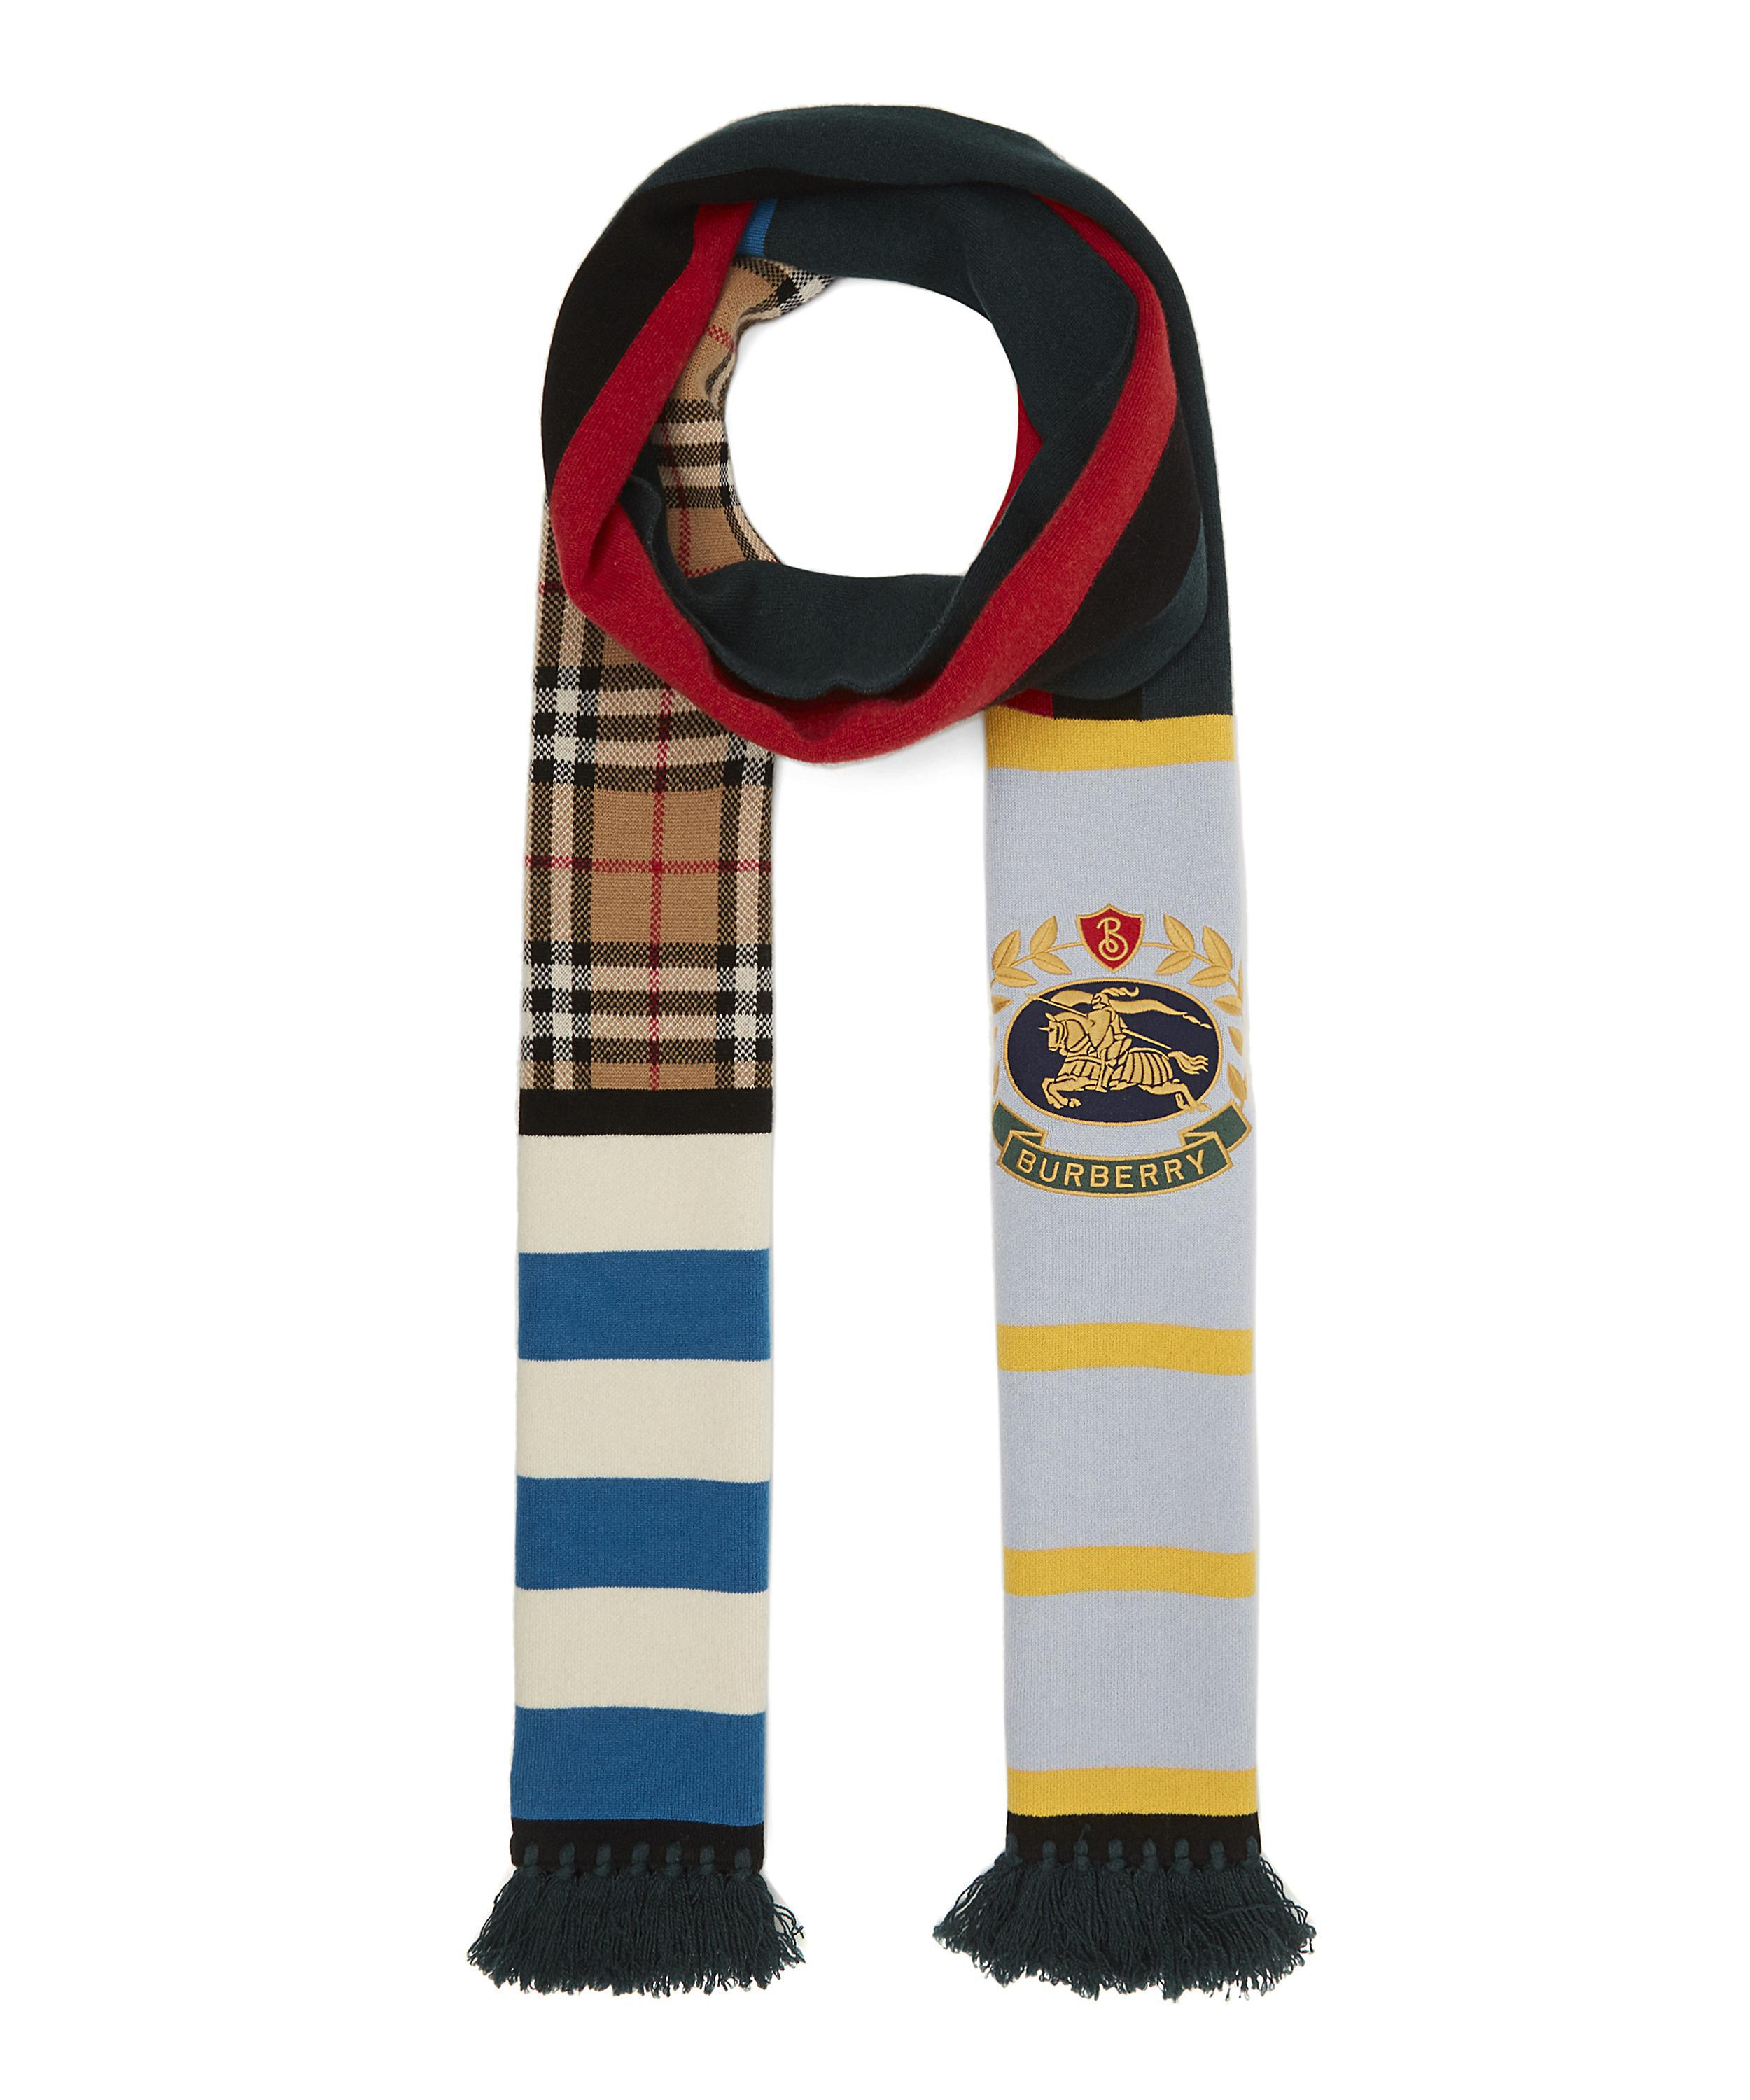 7677197f95 Lyst - Burberry Vintage Football Crest Cashmere Knit Scarf for Men